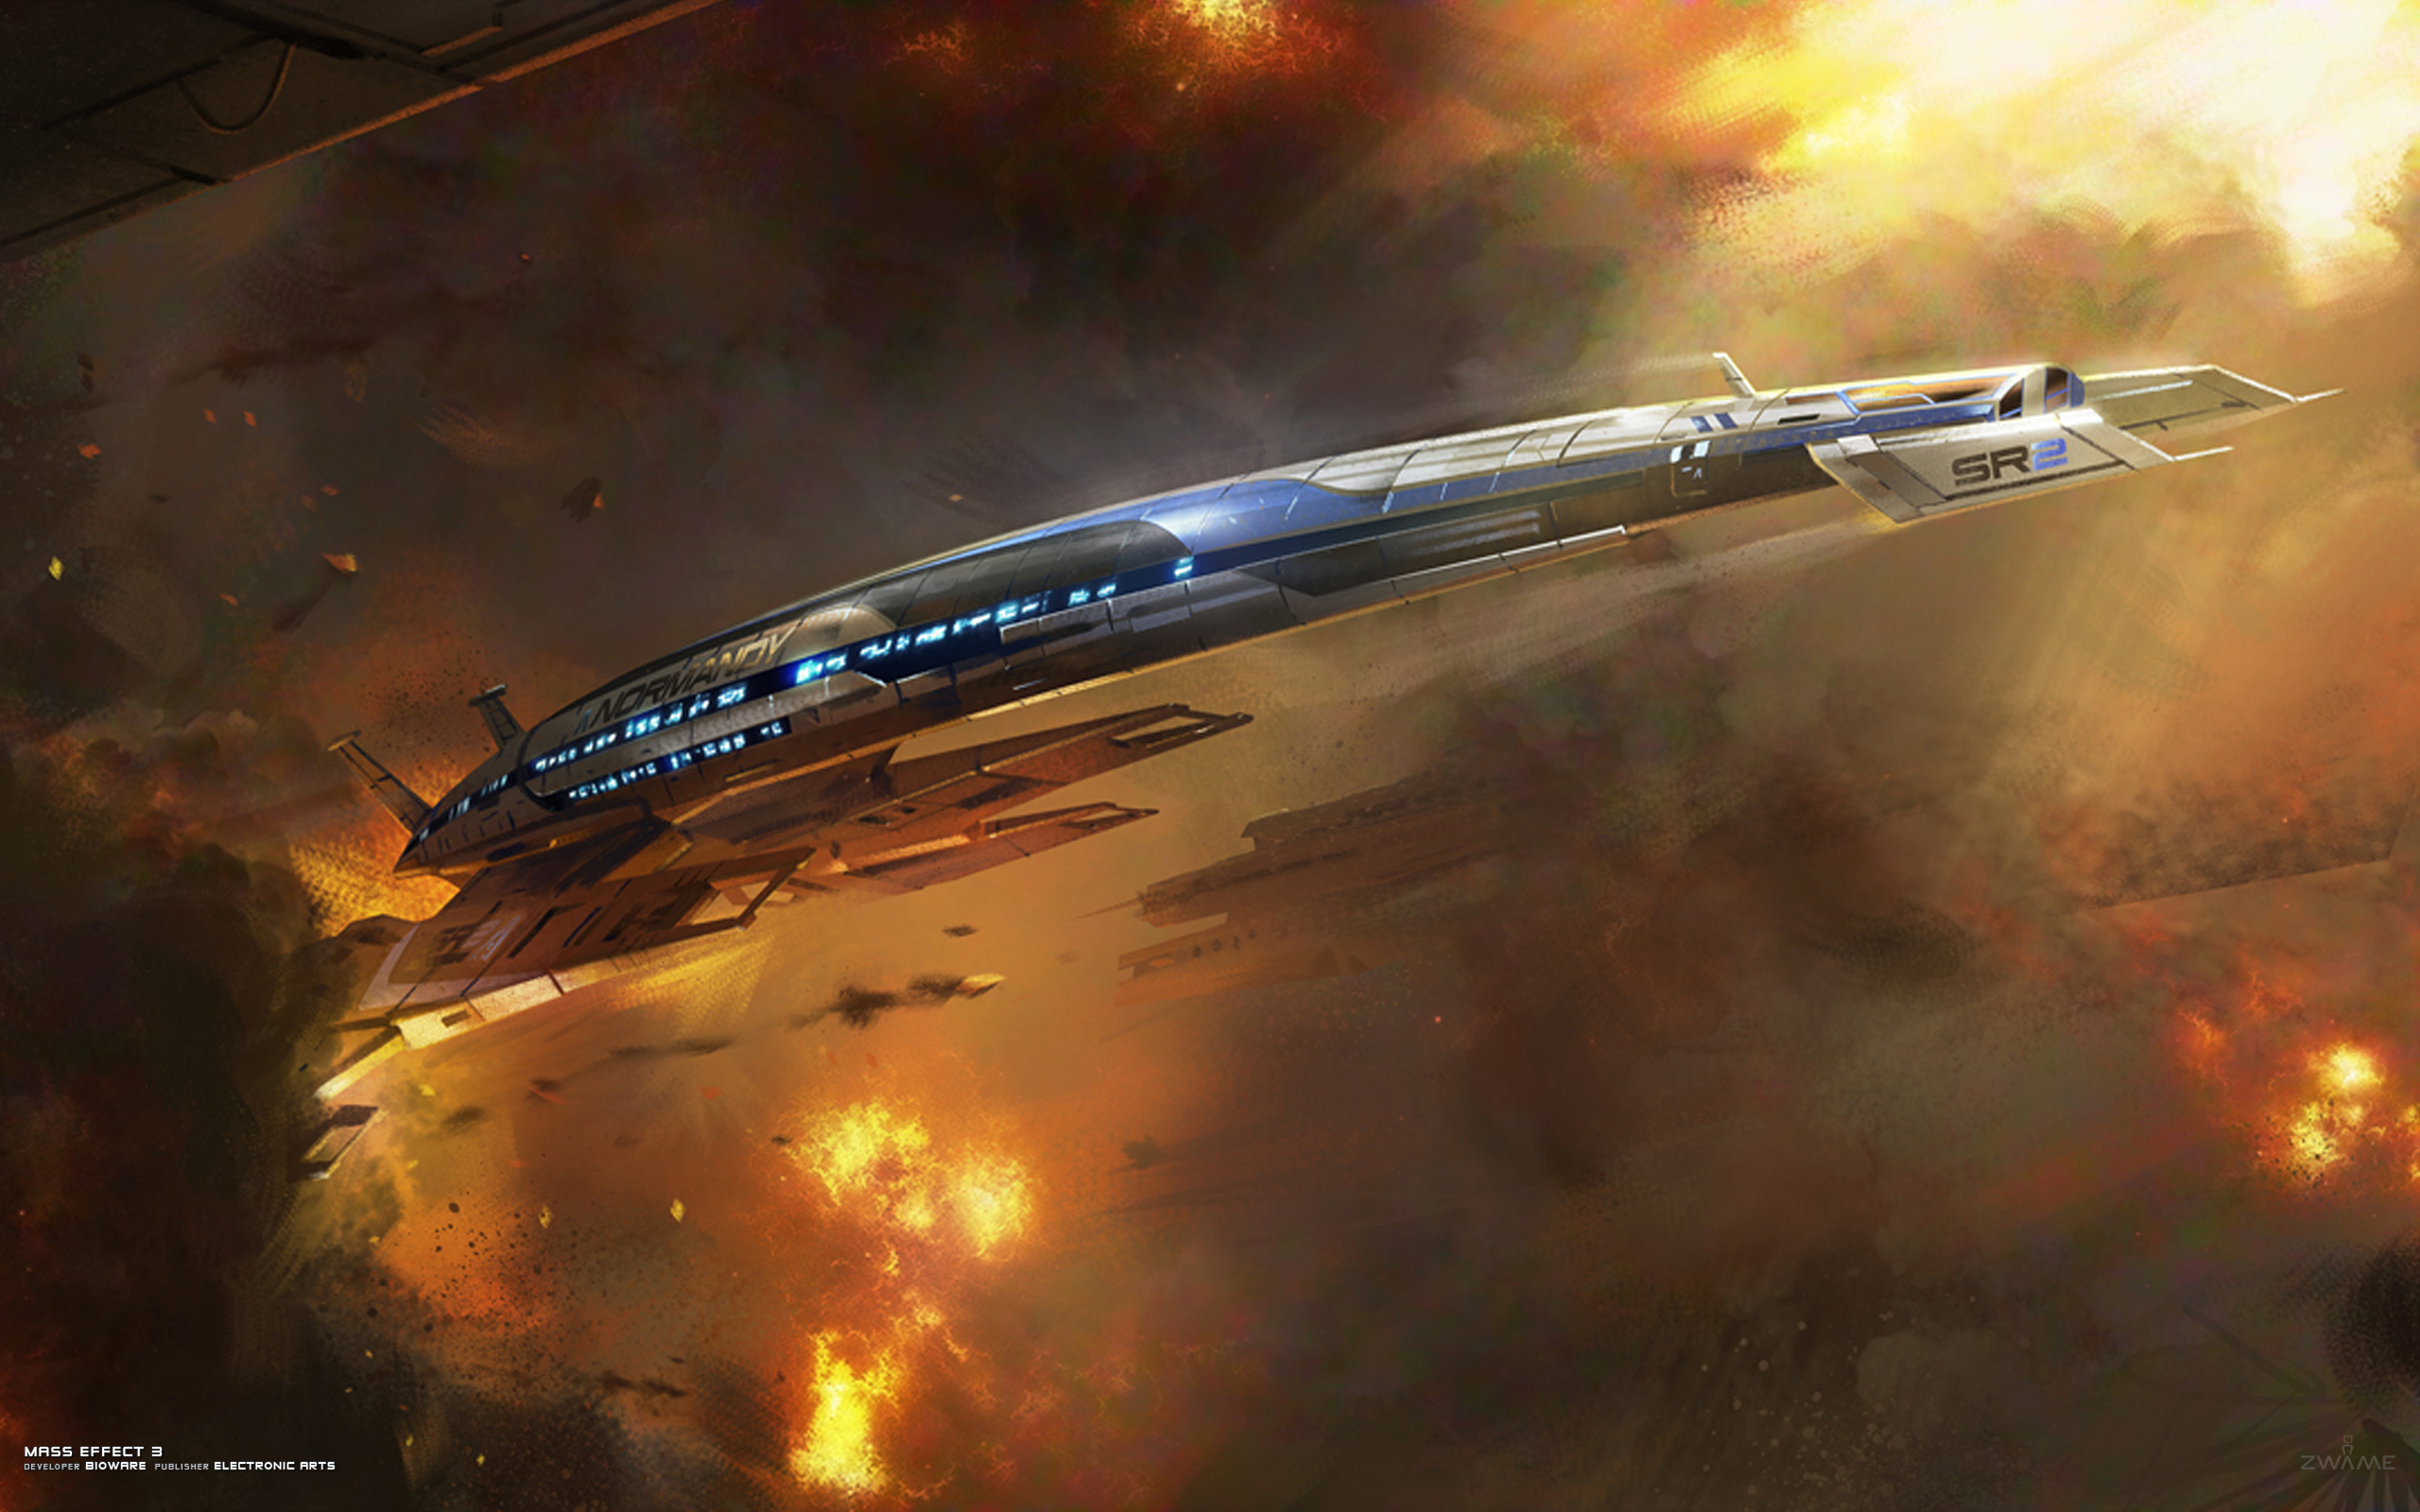 Mass effect 3, normandy, sr2, alliance, 2560x1600